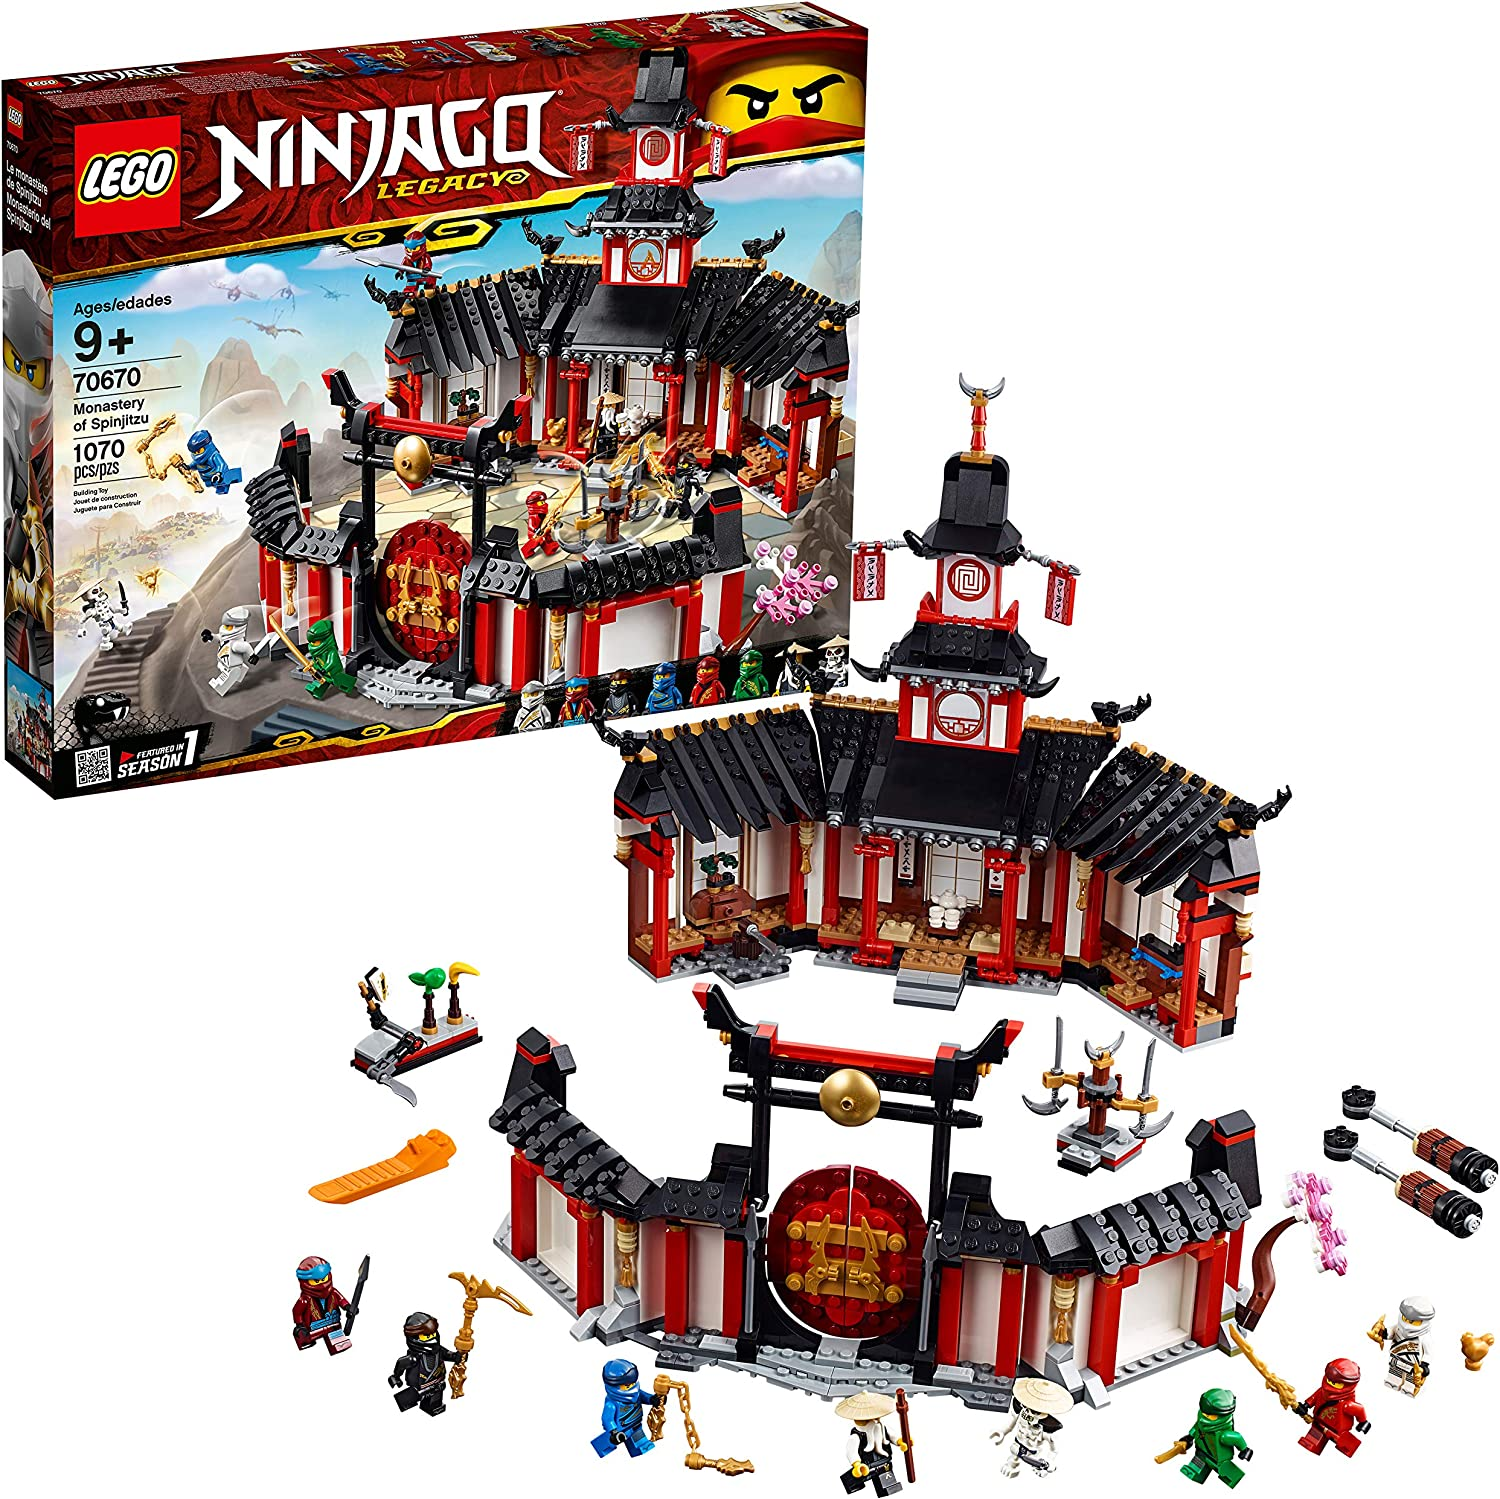 LEGO NINJAGO Legacy Monastery of Spinjitzu 70670 Battle Toy Building Kit includes Ninja Toy Weapons and Training Equipment for Creative Play (1,070 ...